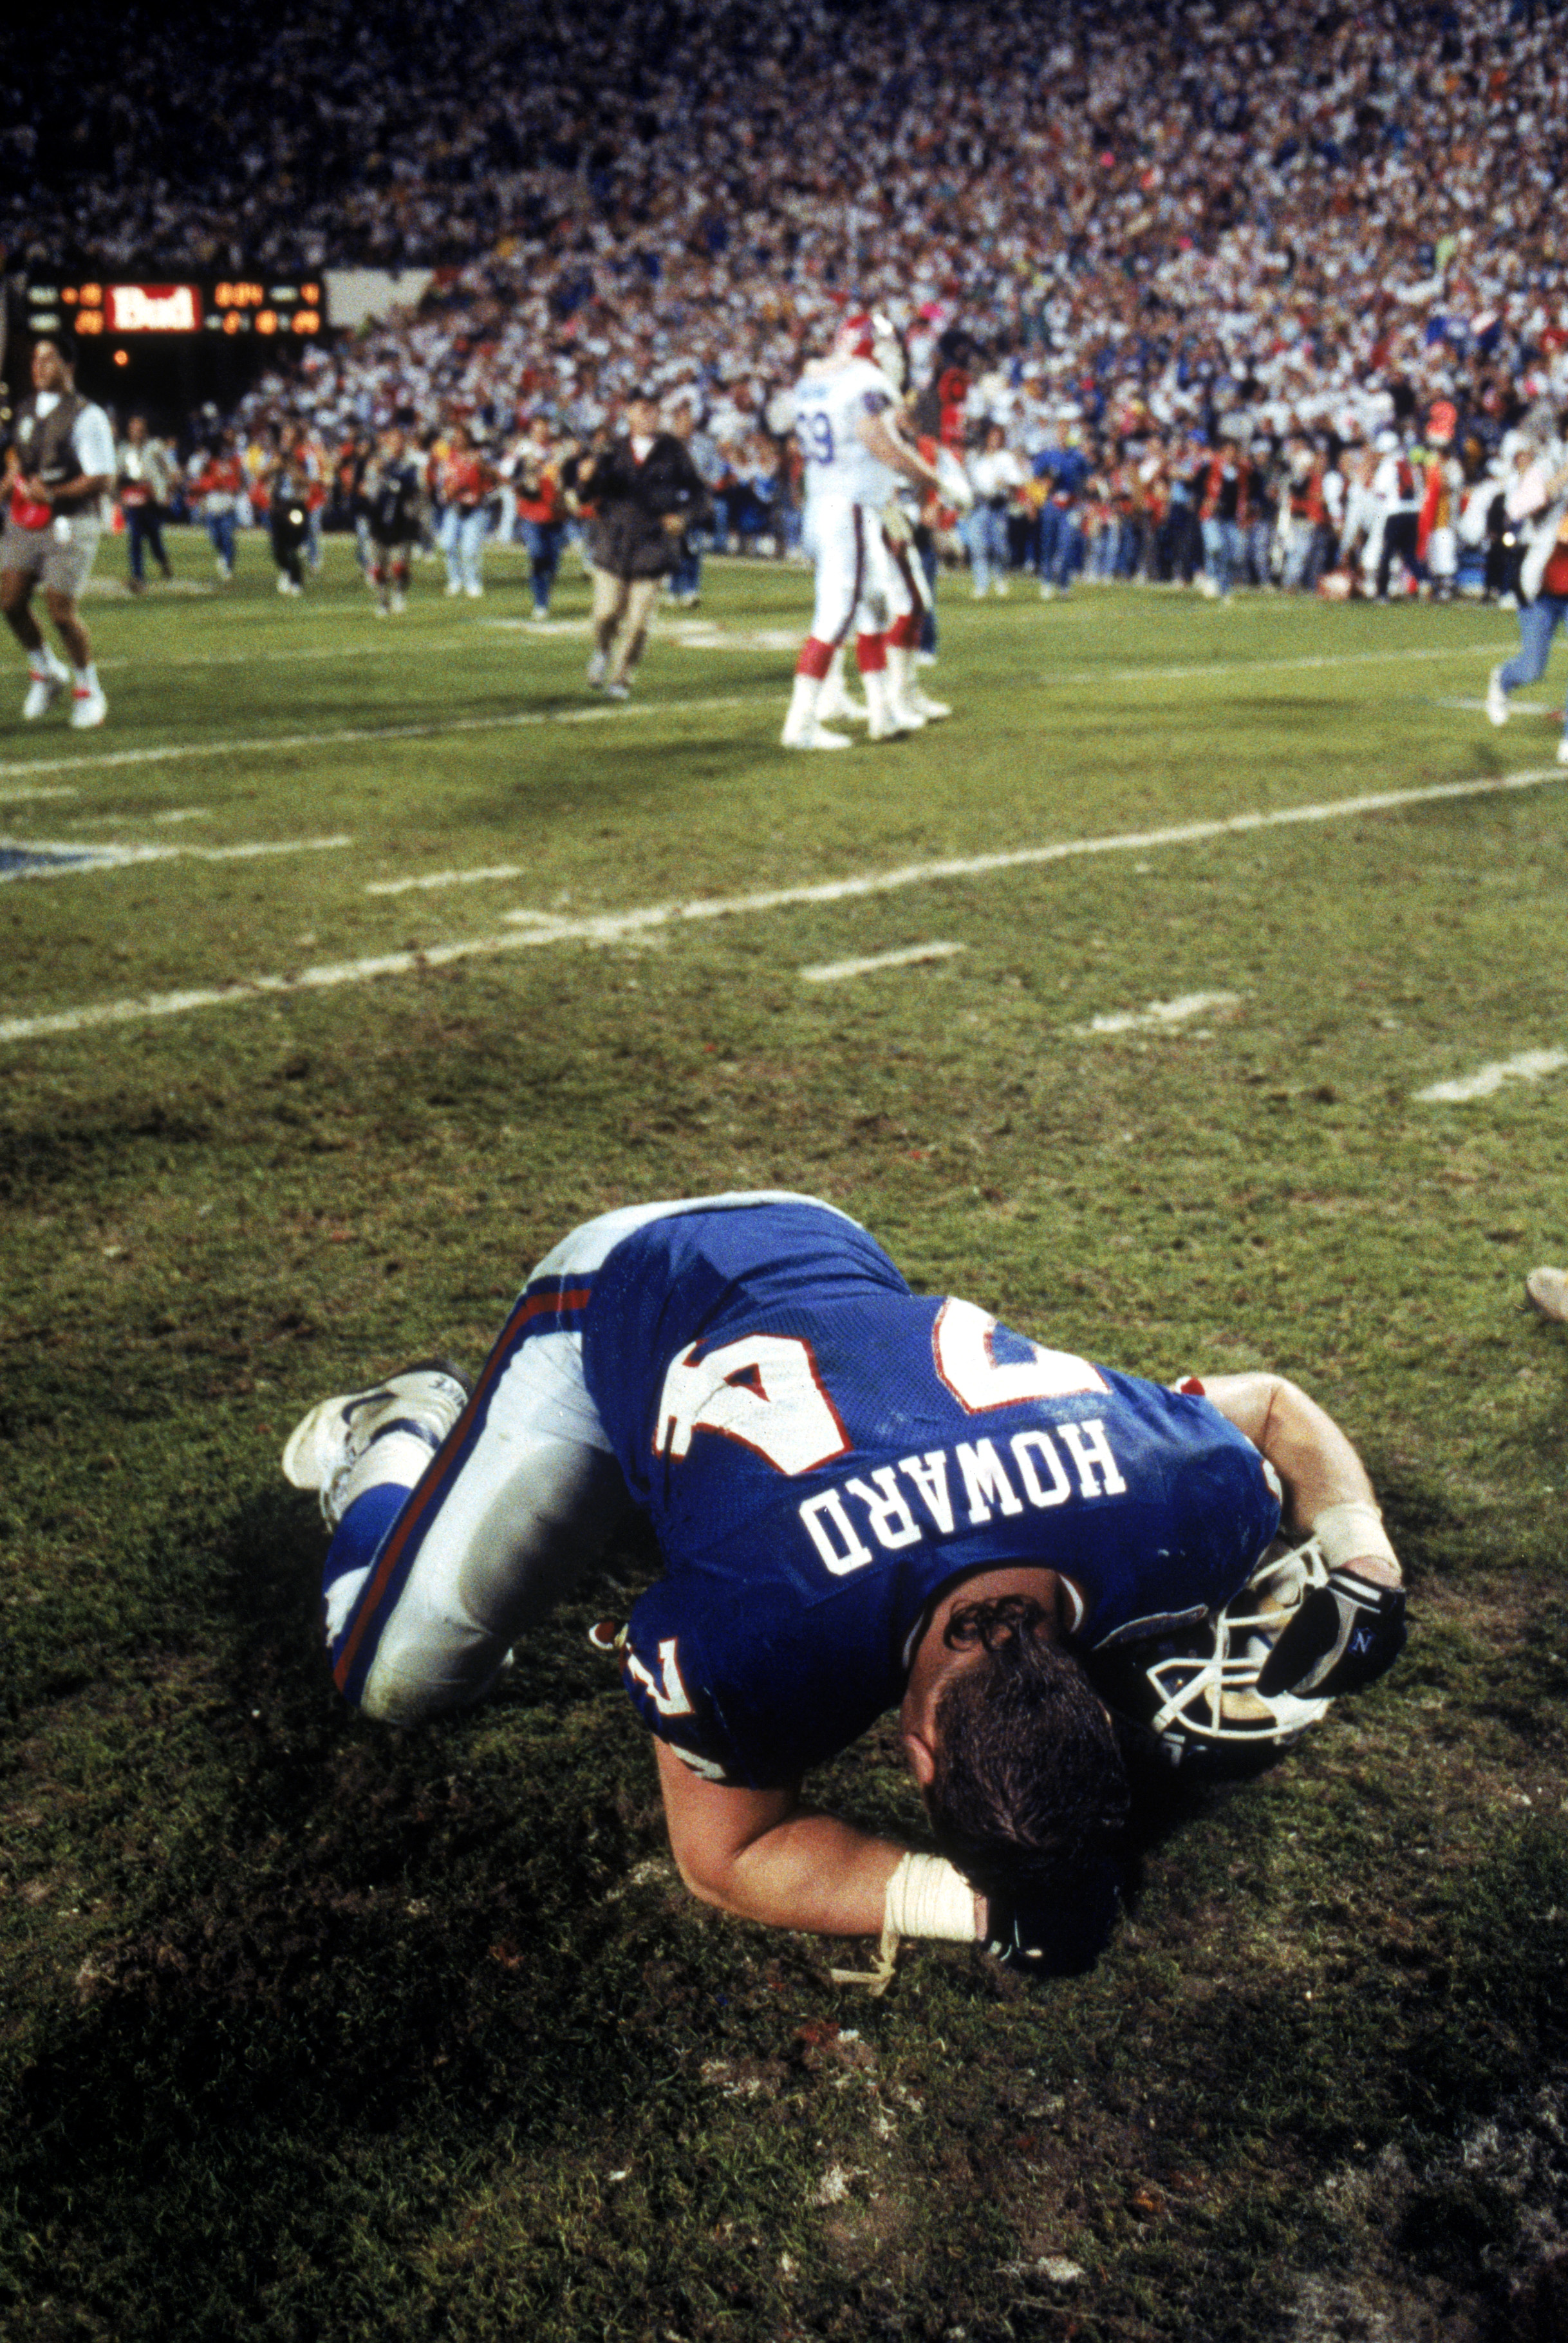 TAMPA, FL - JANUARY 27:  Defensive lineman Erik Howard #74 of the New York Giants collapses on the field following the game against the Buffalo Bills during Super Bowl XXV at Tampa Stadium on January 27, 1991 in Tampa, Florida. The Giants defeated the Bil